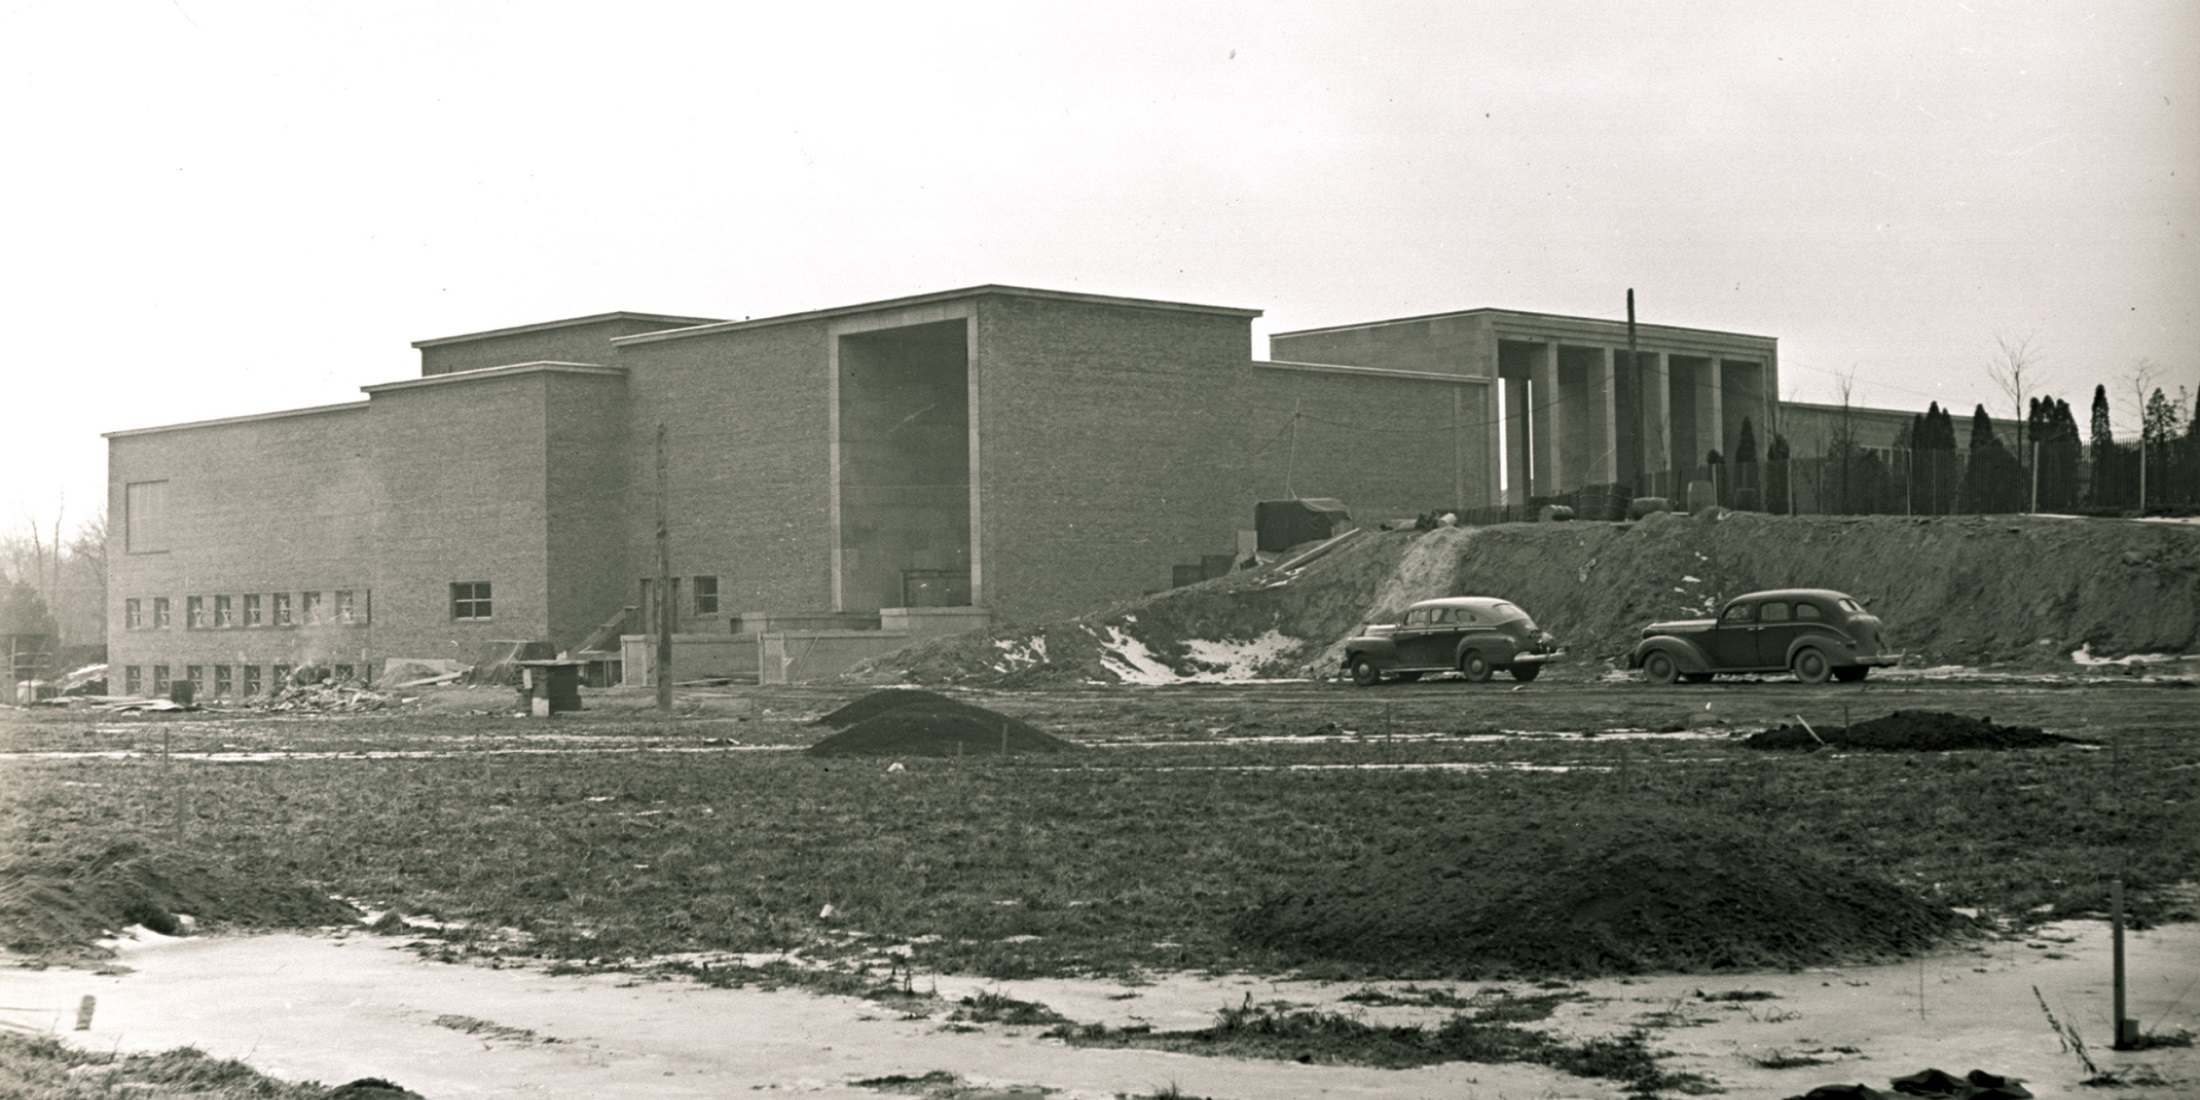 From the Archive - Museum Construction